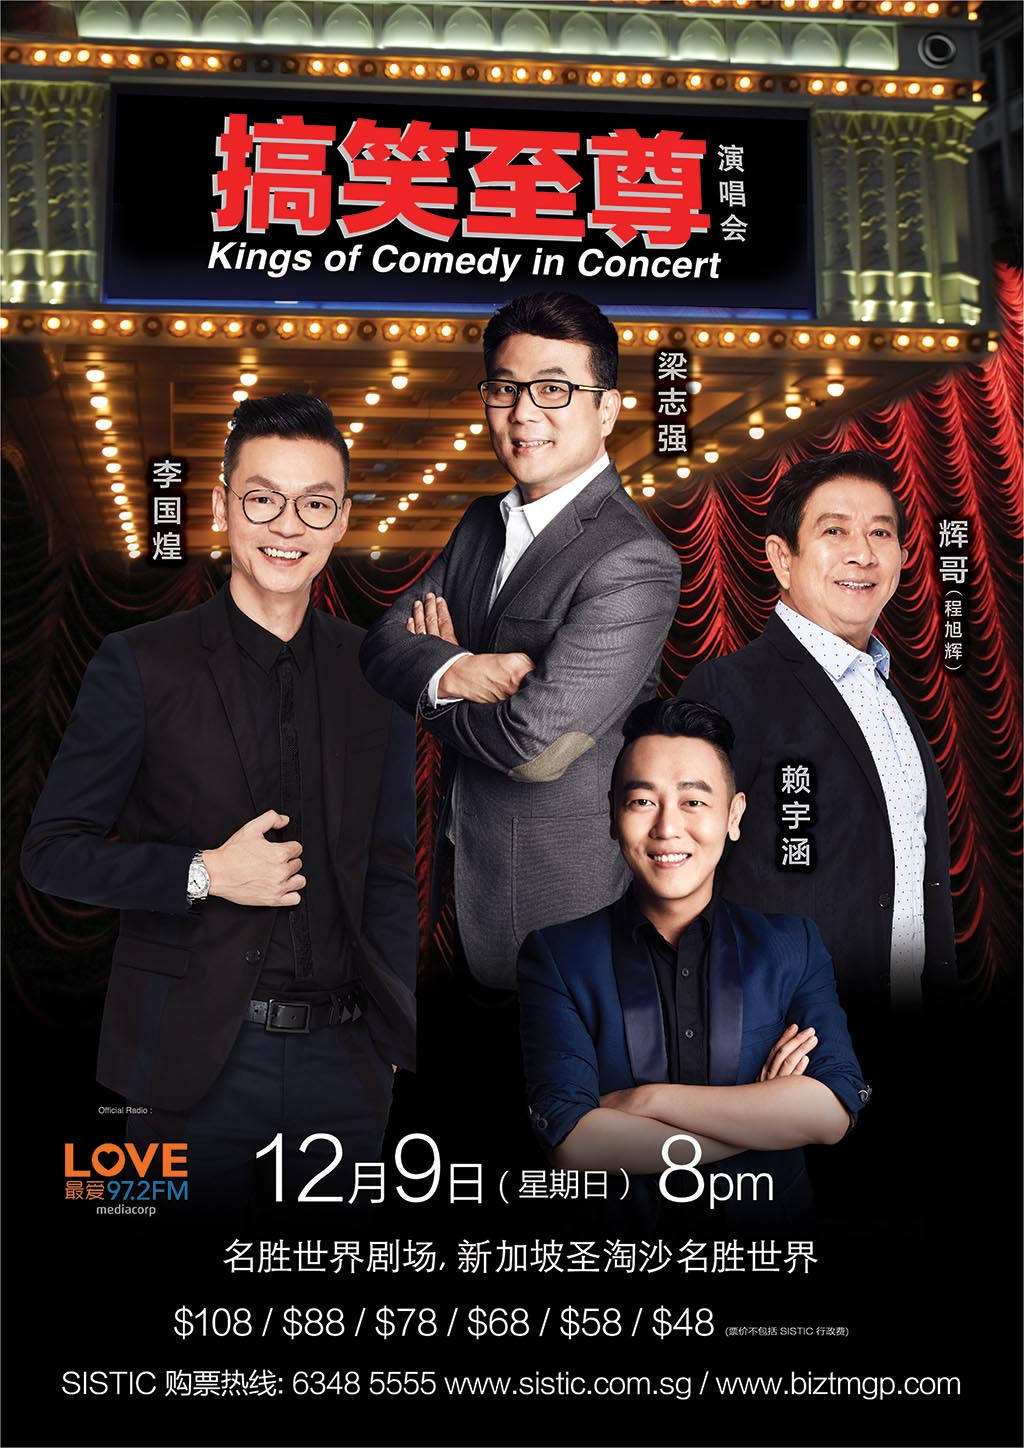 Kings of Comedy in Concert